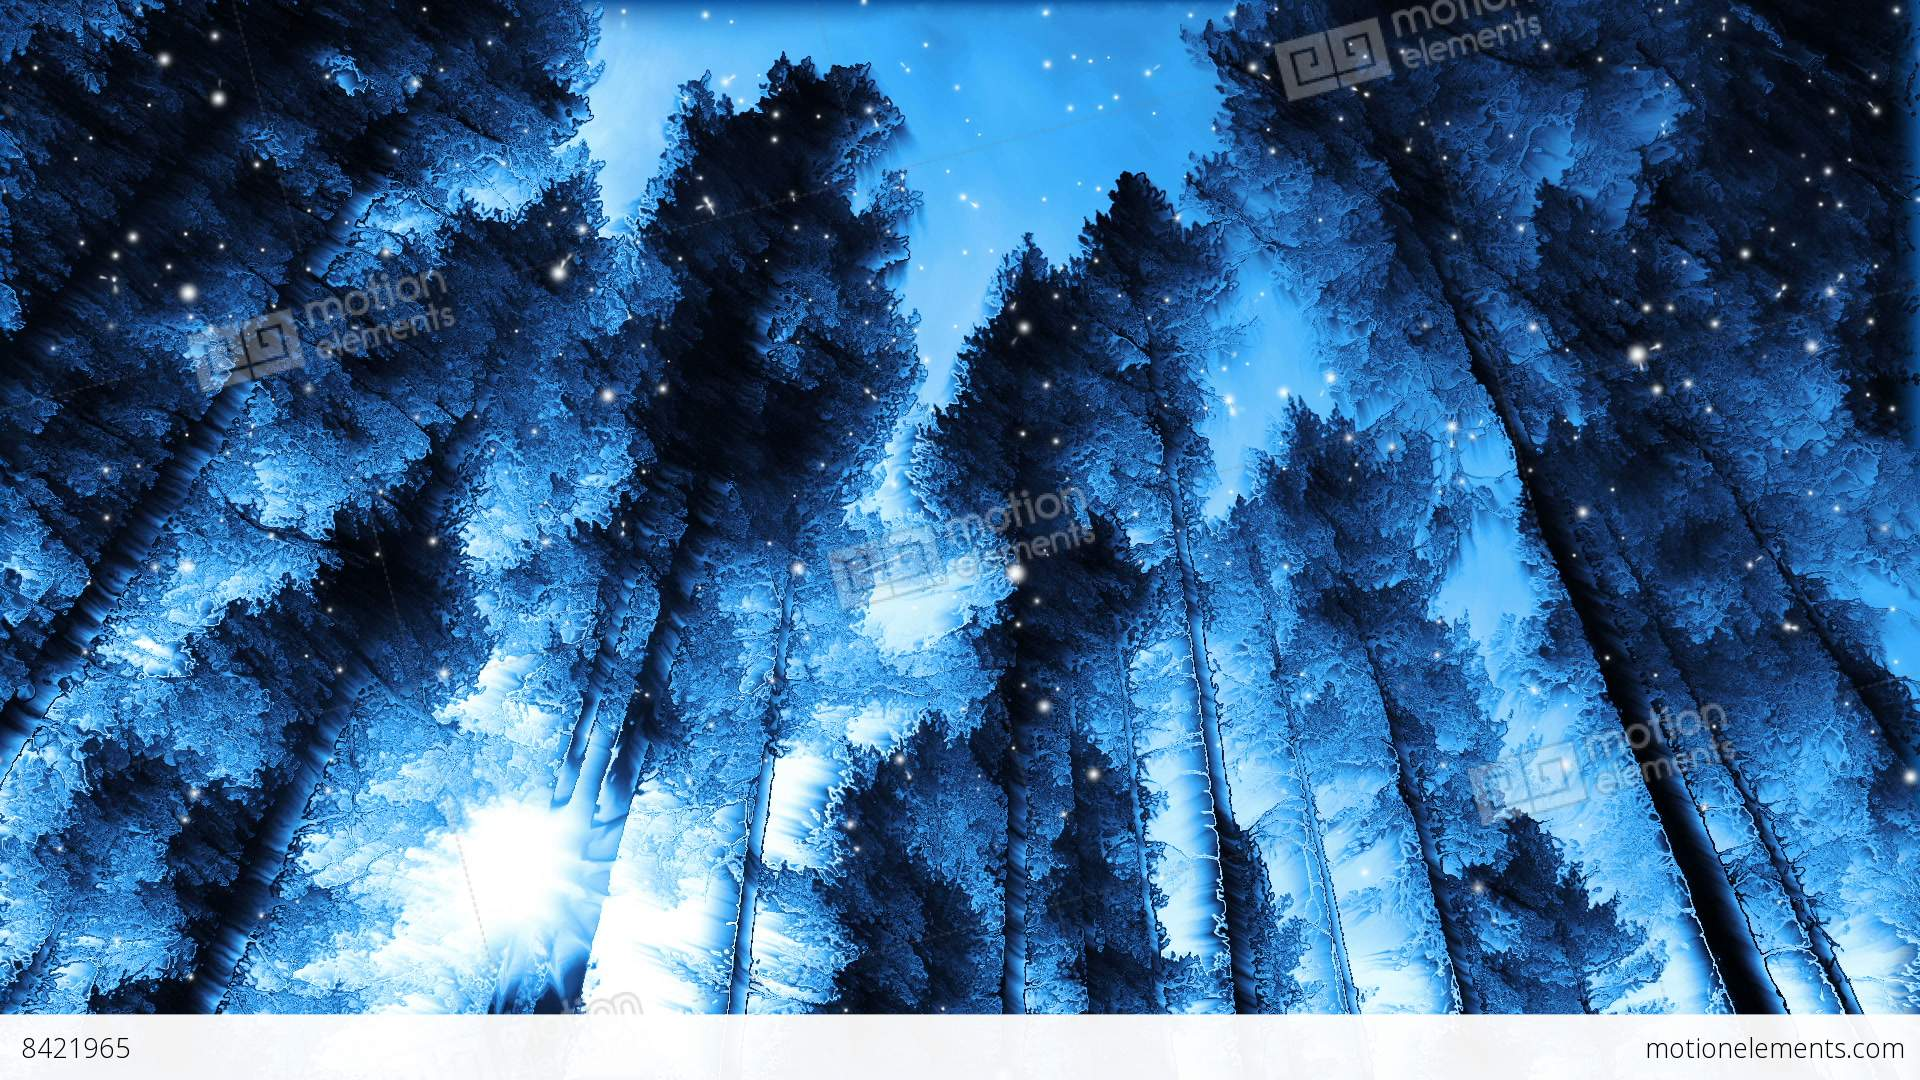 Snow Falling Gif Wallpaper Abstract Winter Forest Stock Animation 8421965